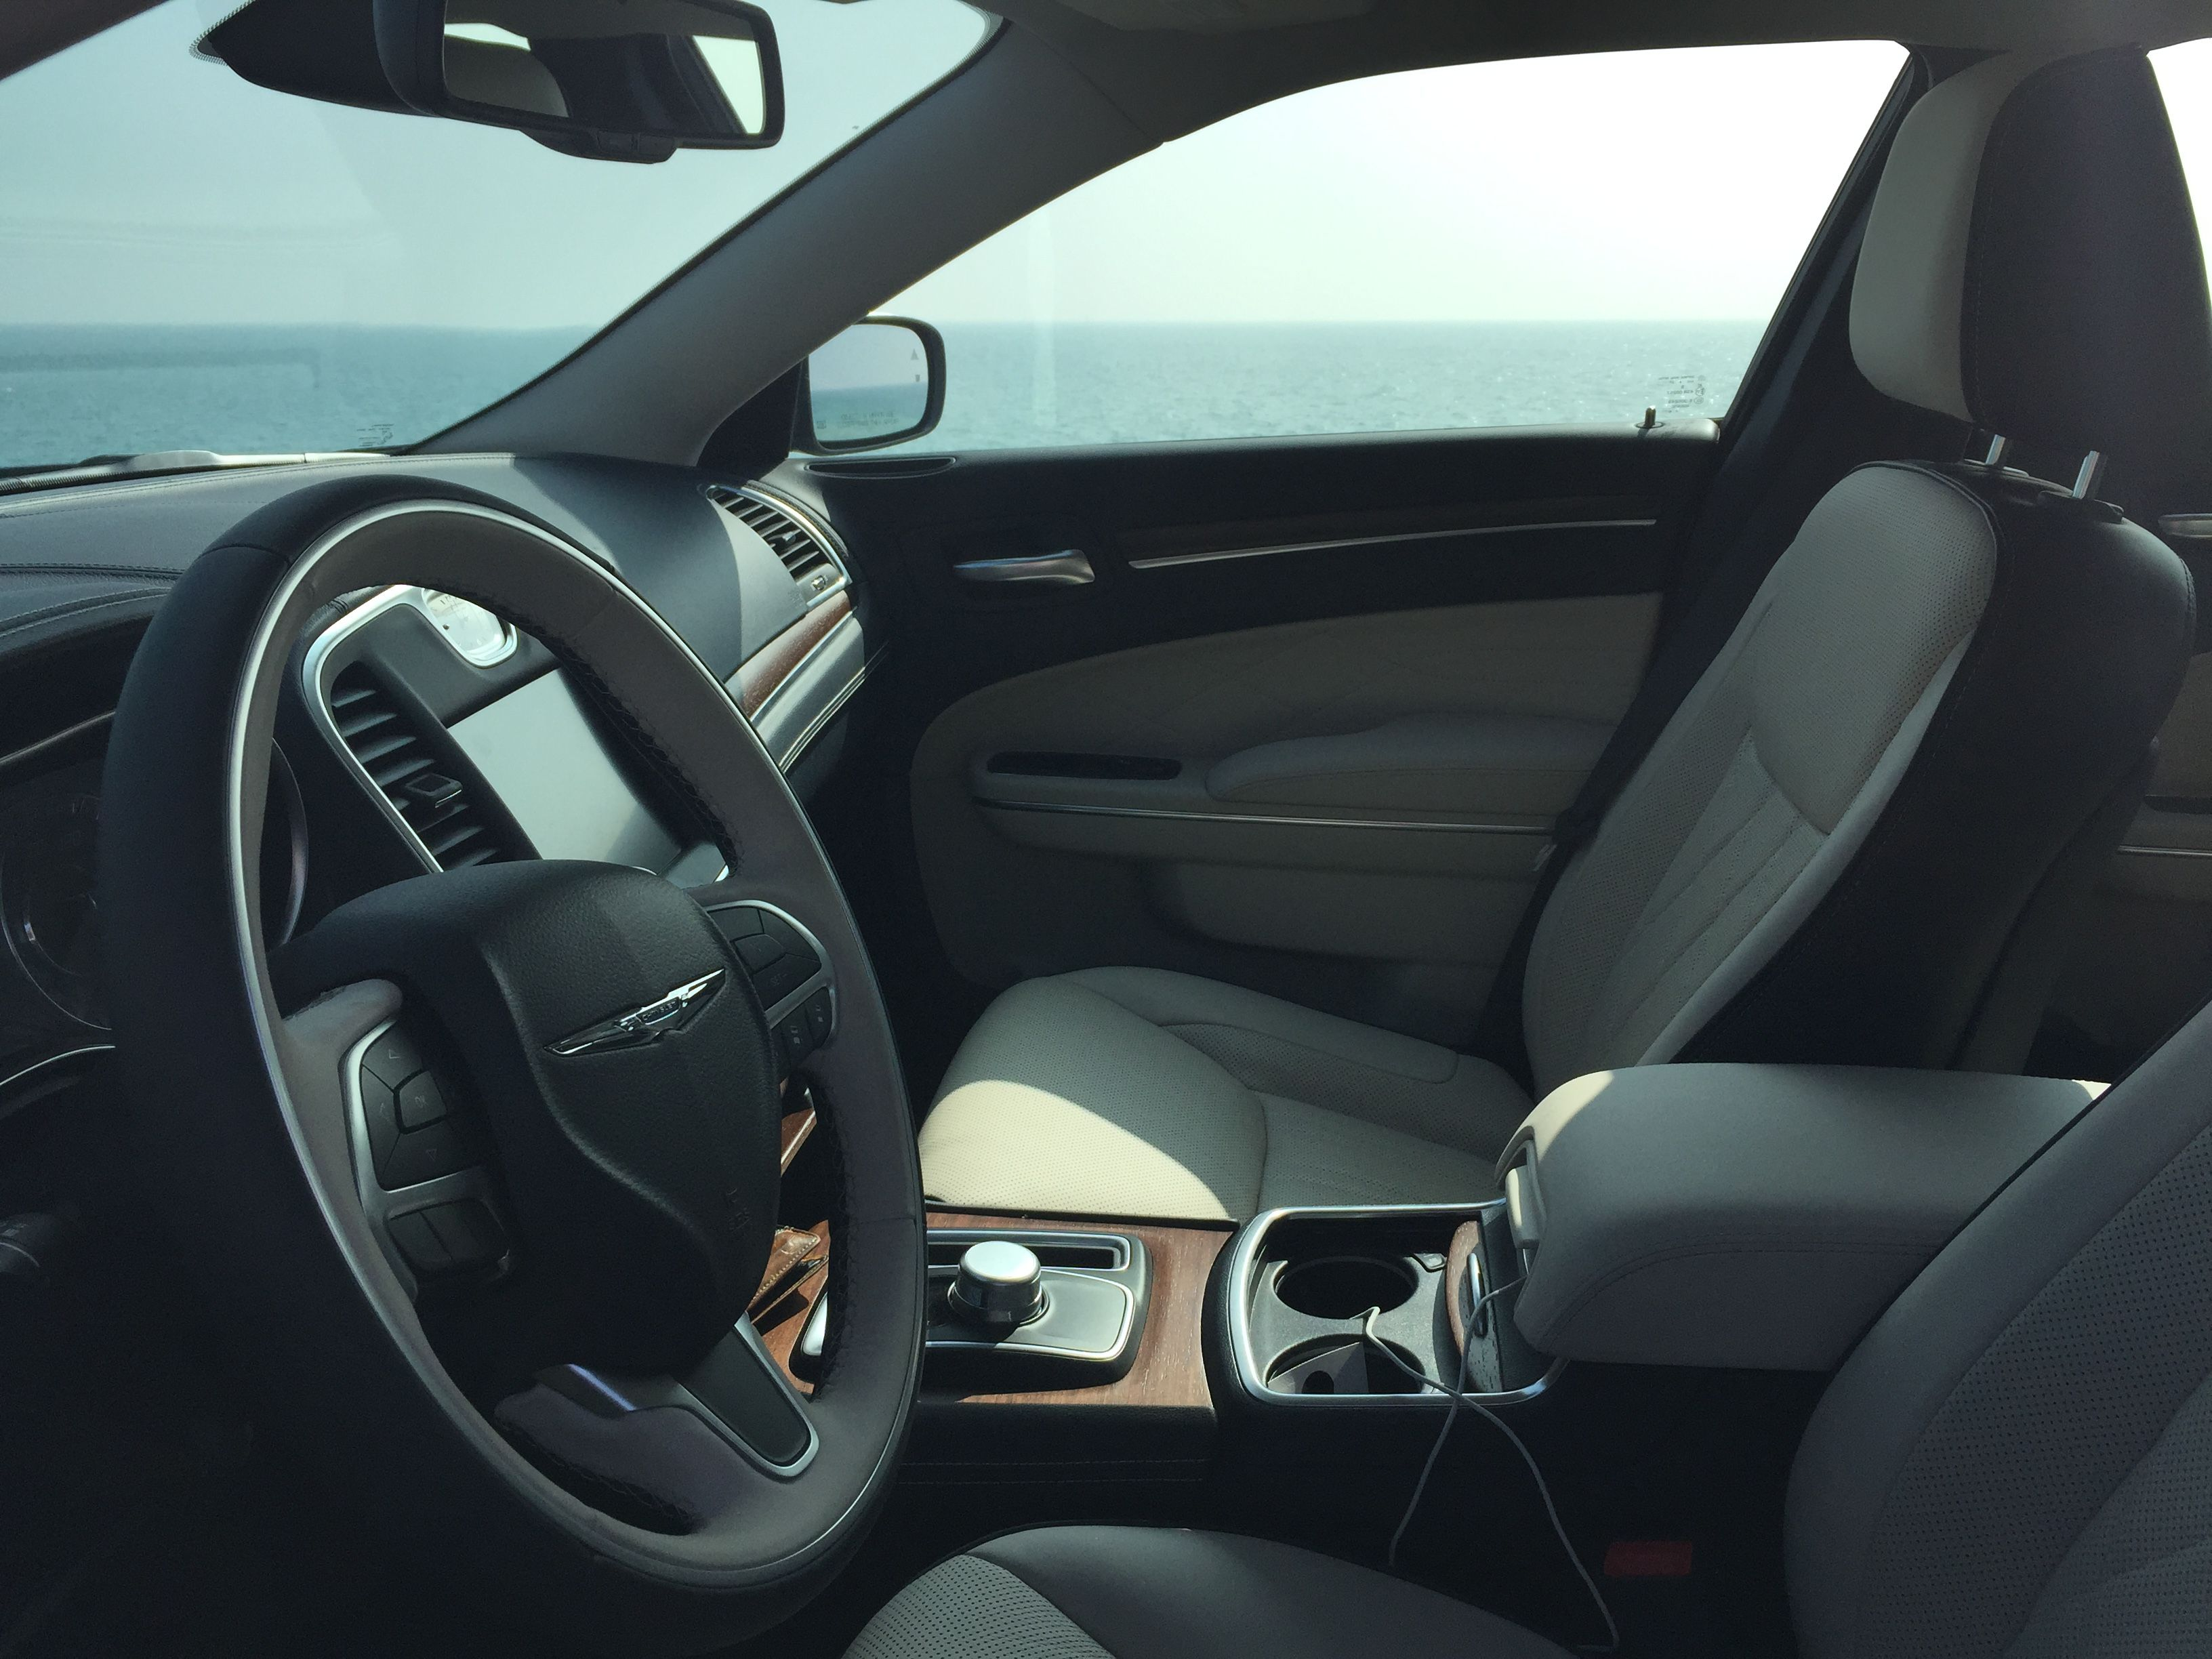 interior courtesy chrysler of dashboard picture alex video l review dykes